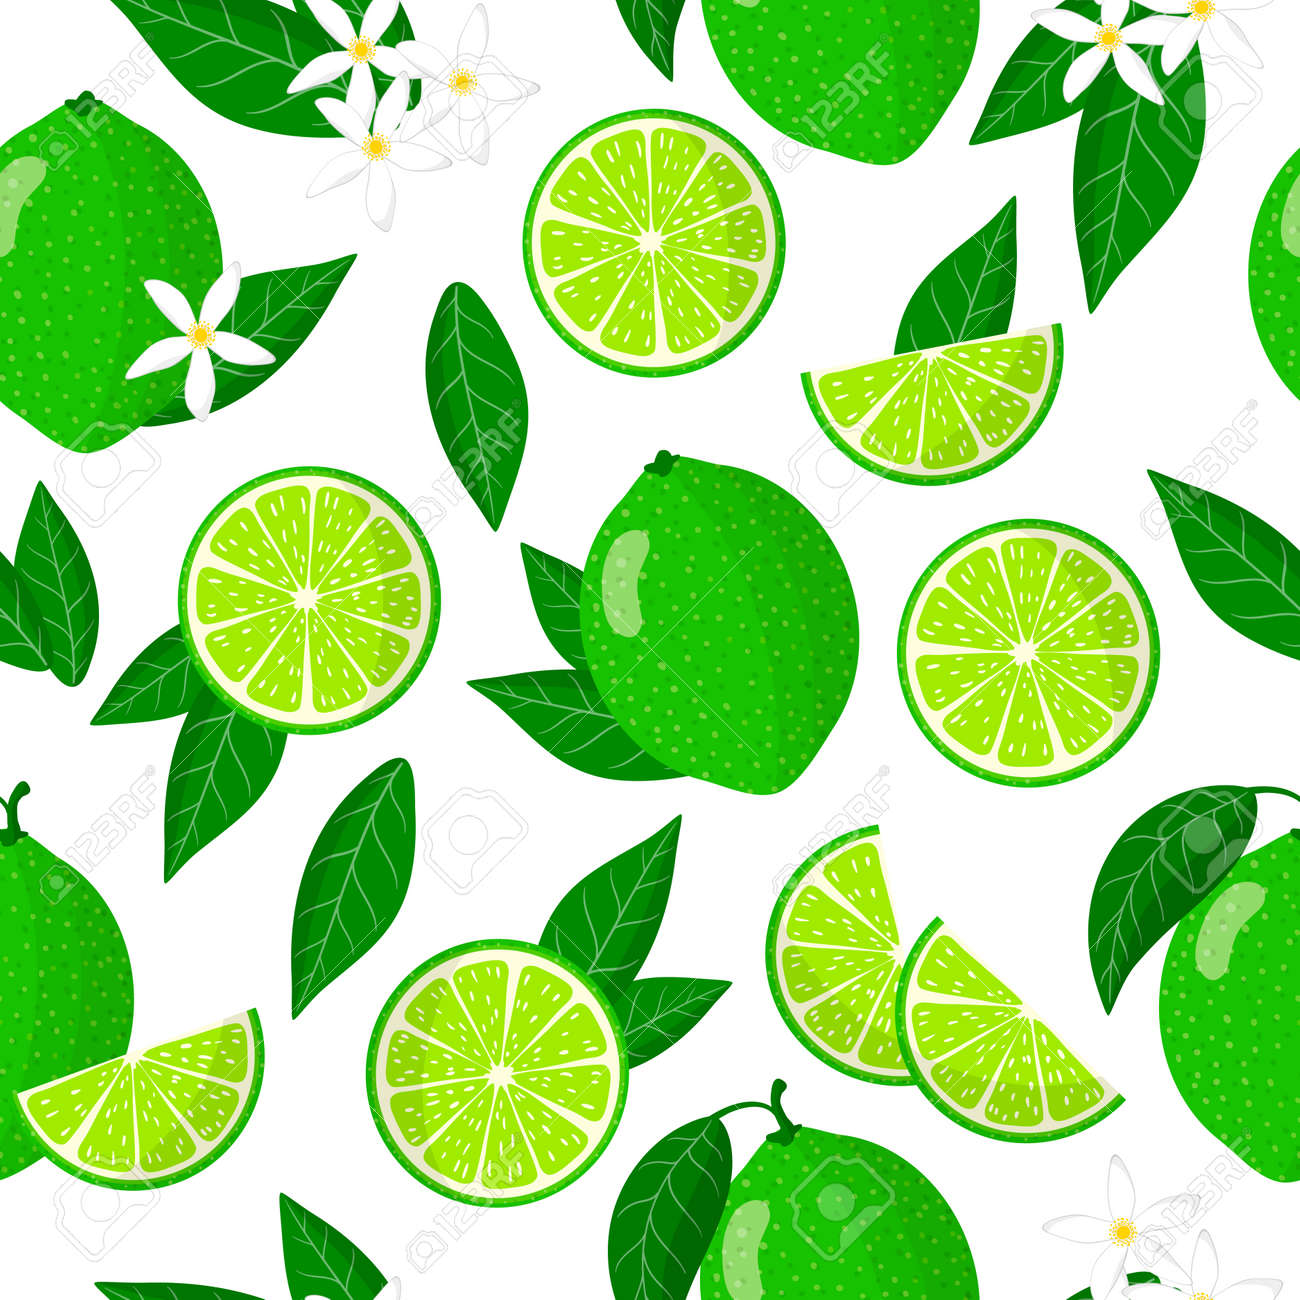 Vector cartoon seamless pattern with Citrus aurantiifolia or Key lime exotic fruits, flowers and leafs on white background for web, print, cloth texture or wallpaper - 156023244